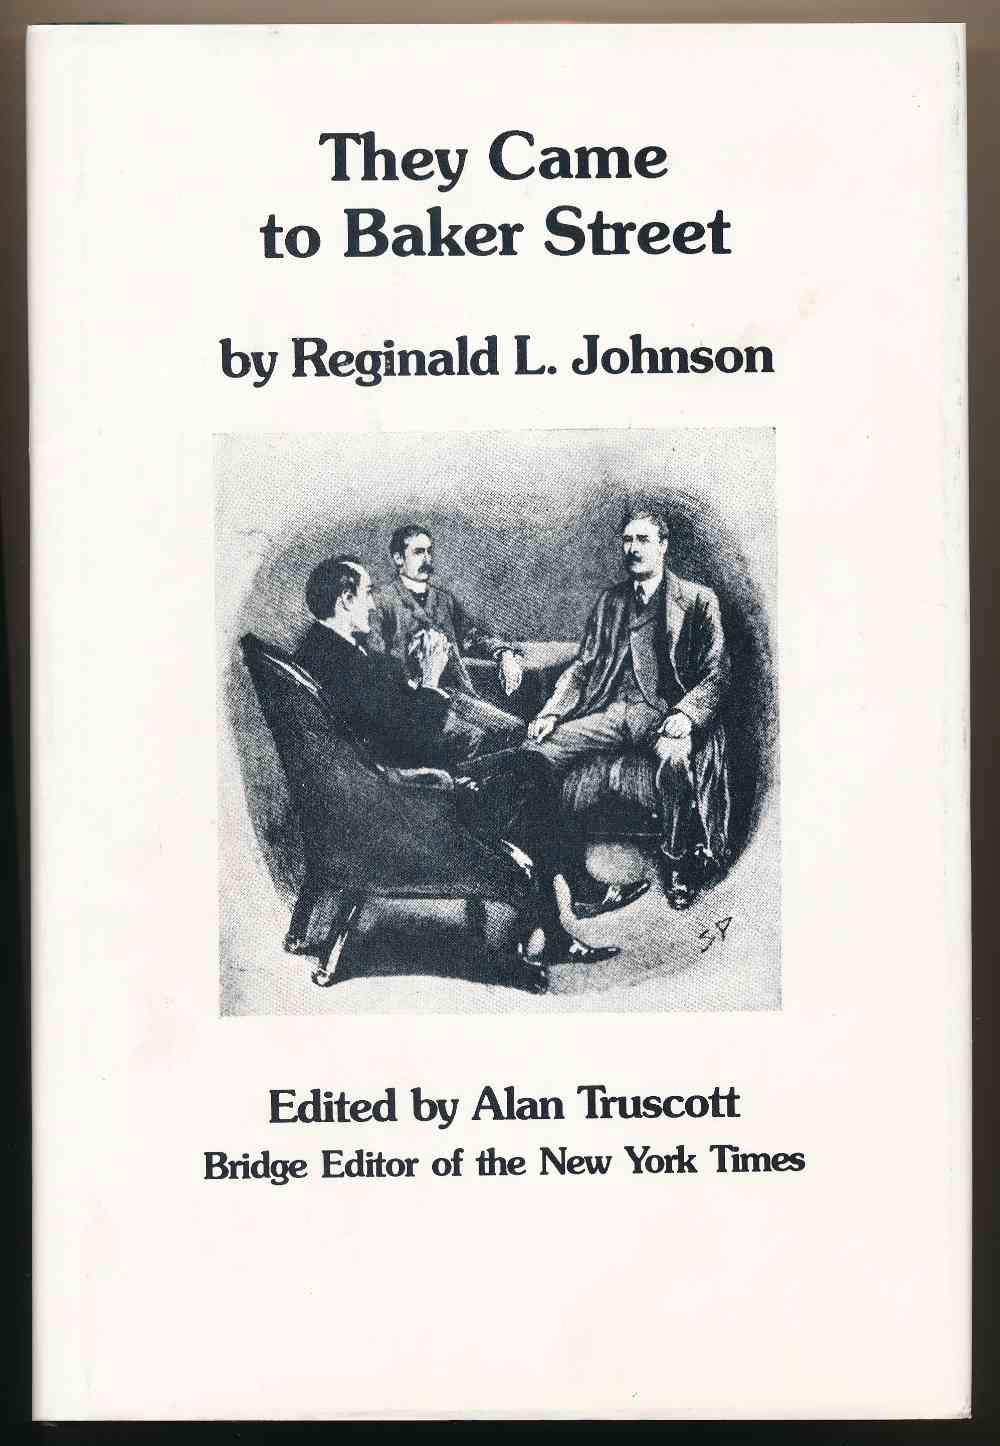 They came to Baker Street